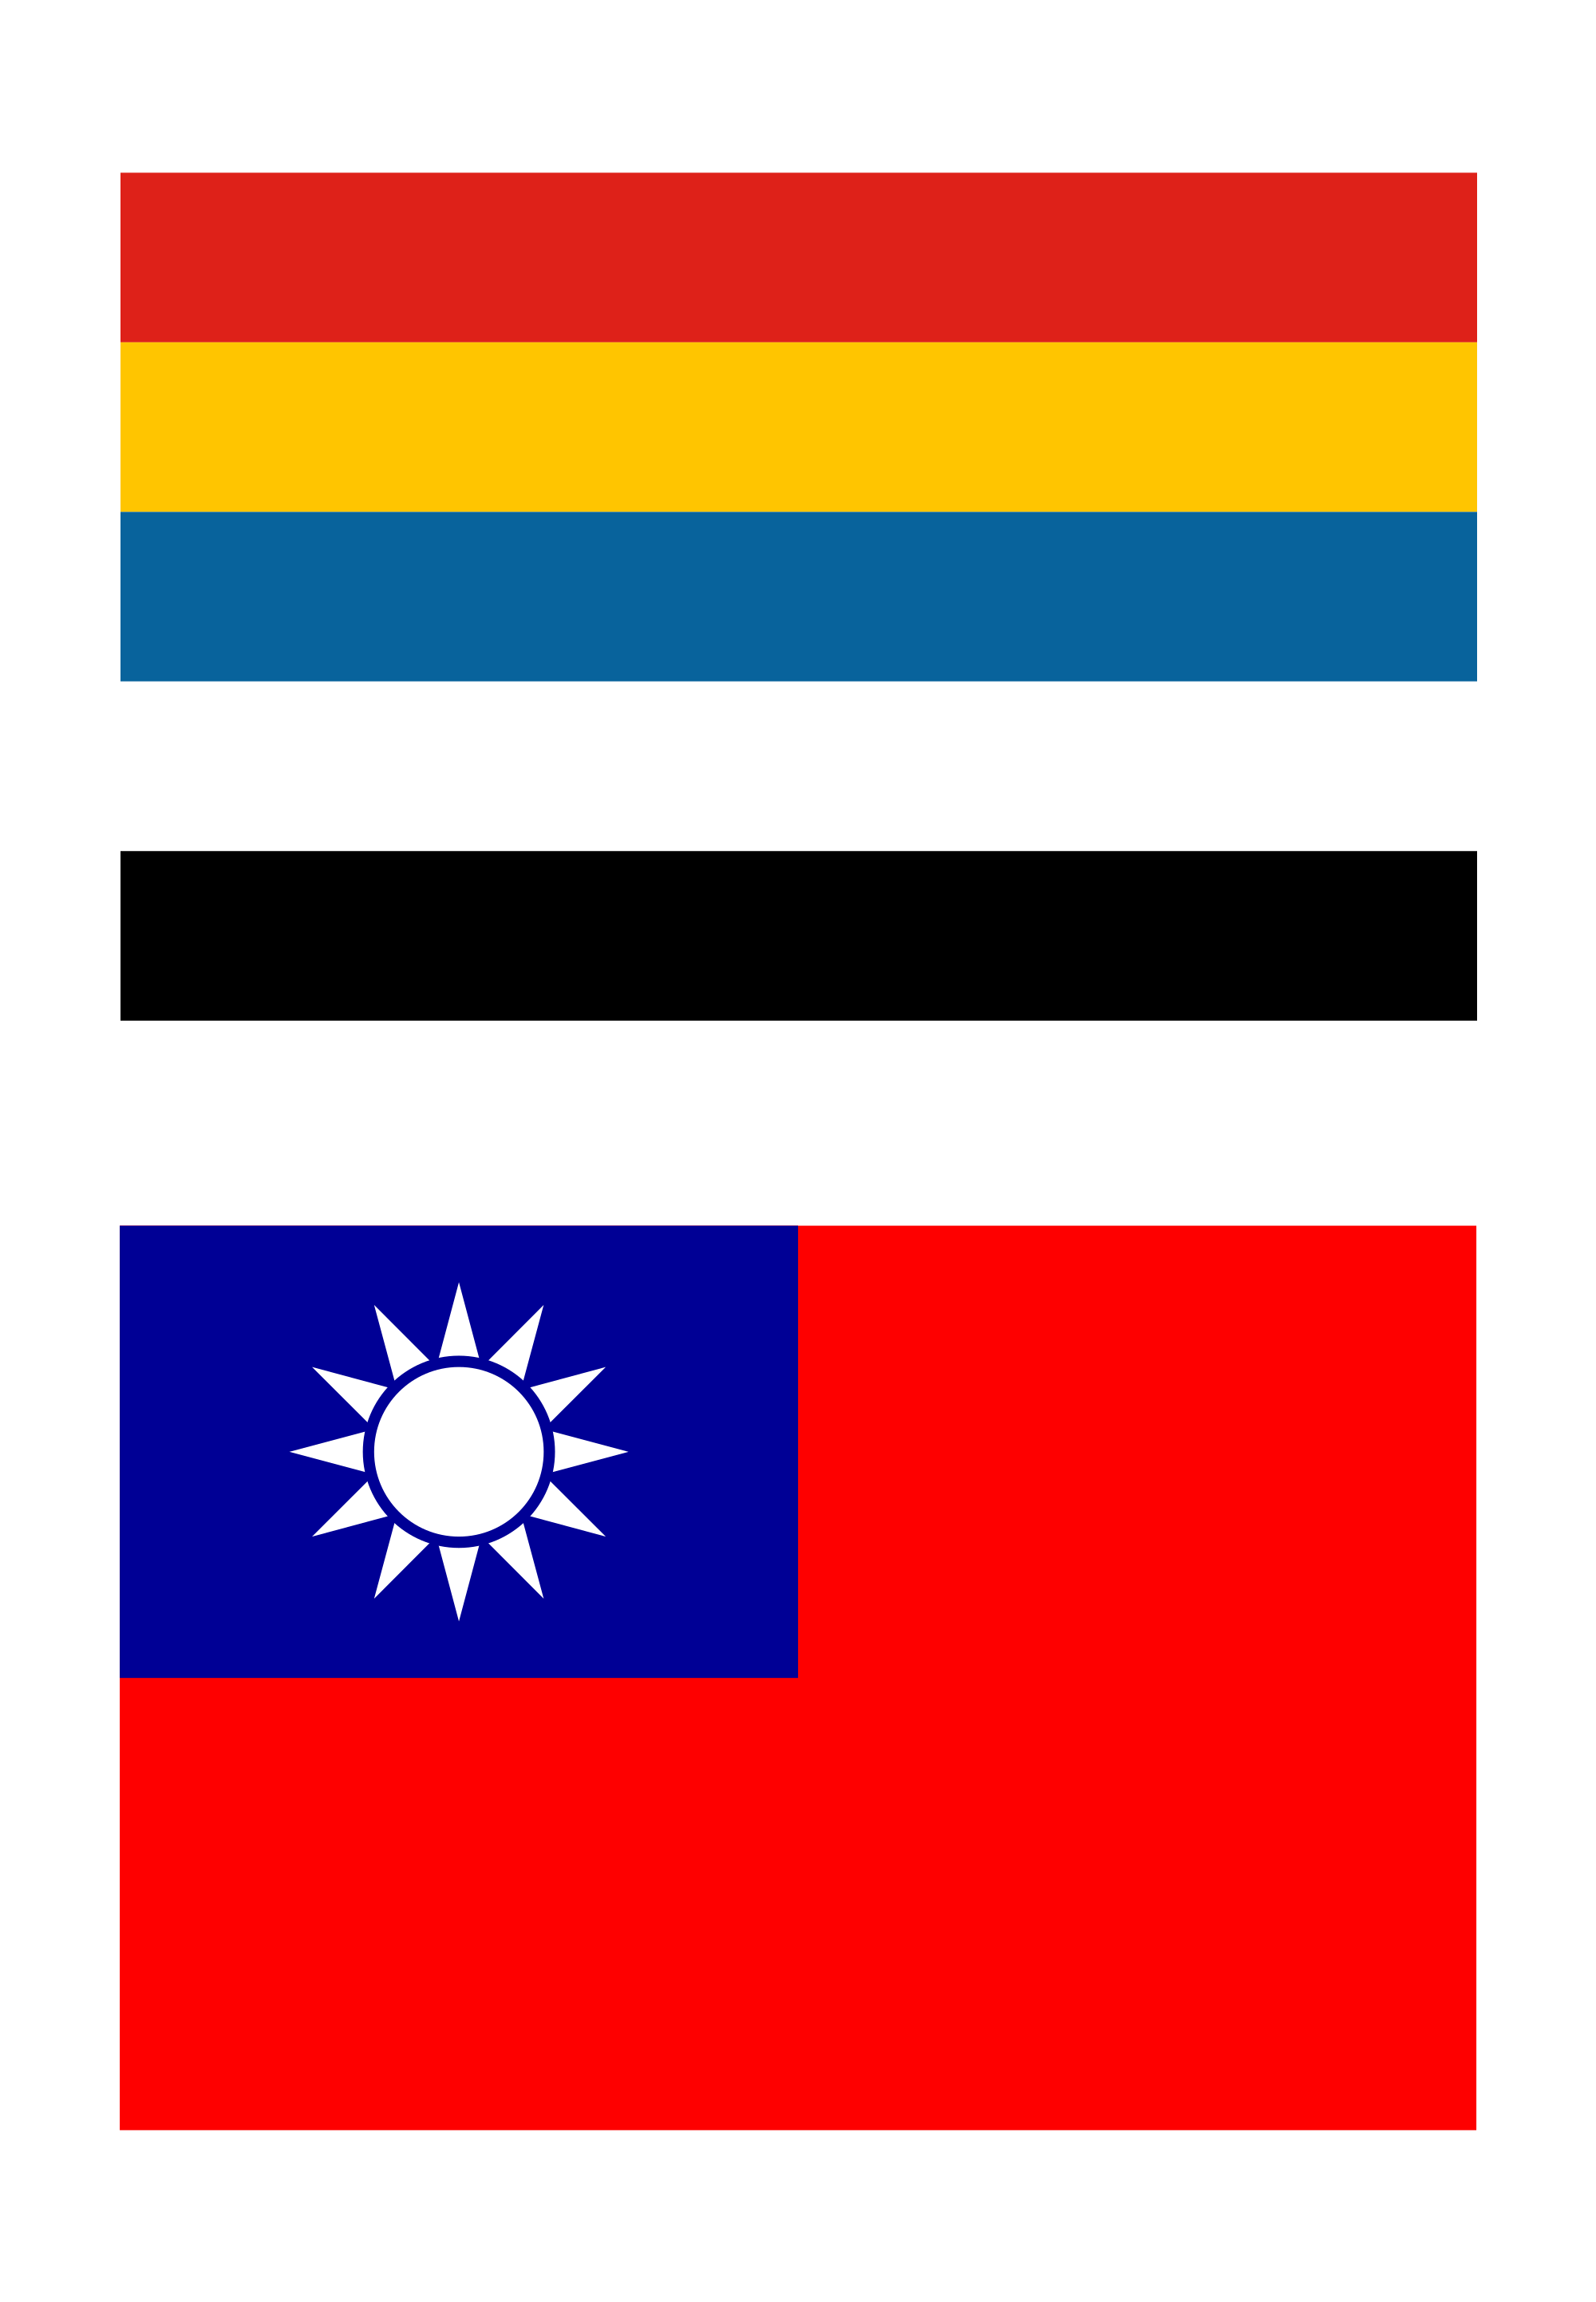 File of the republic. Svg flags jpg free